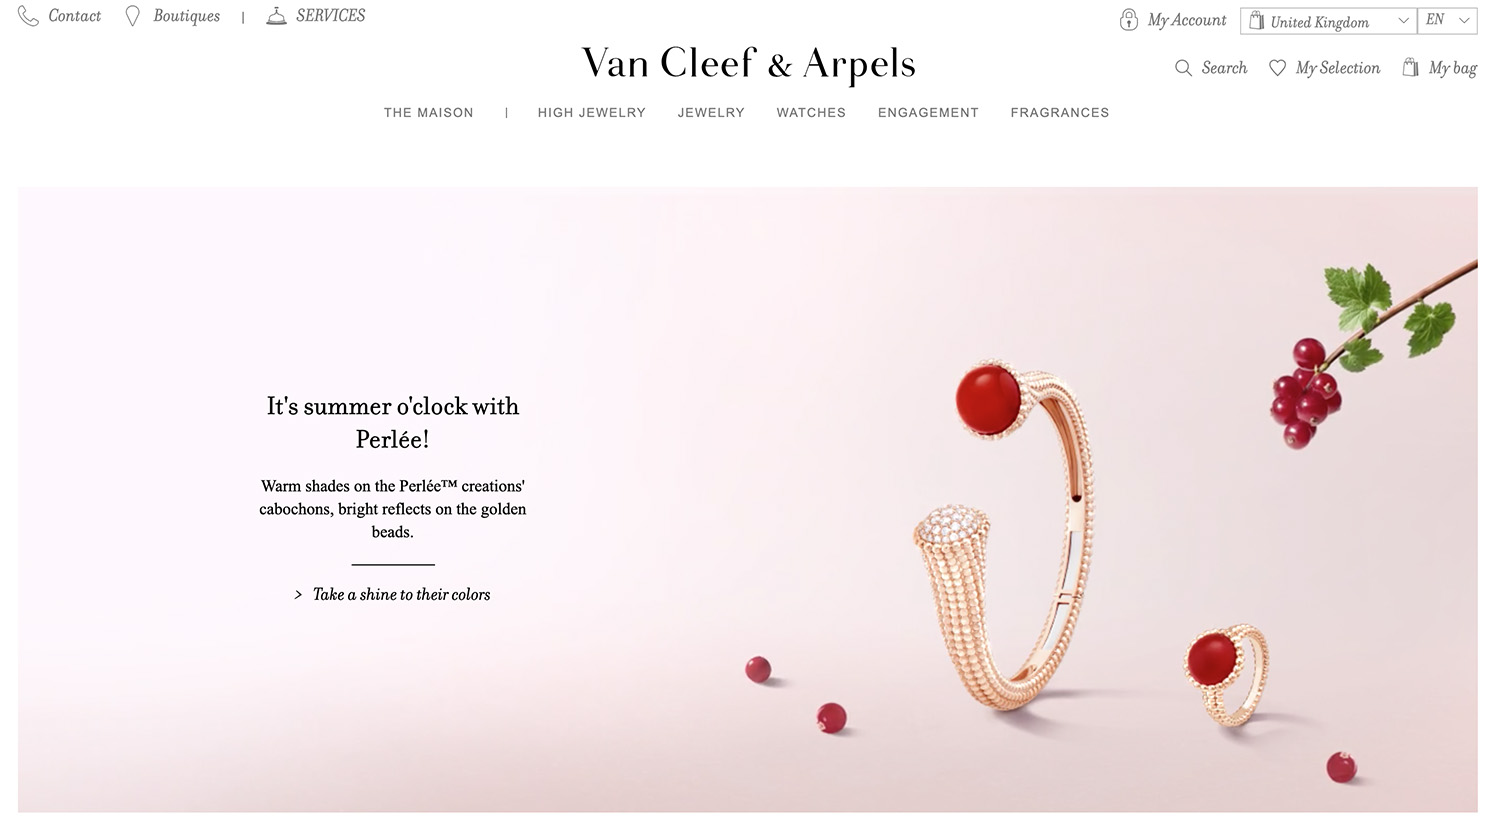 maison van cleef and arpels jewellery website.jpg